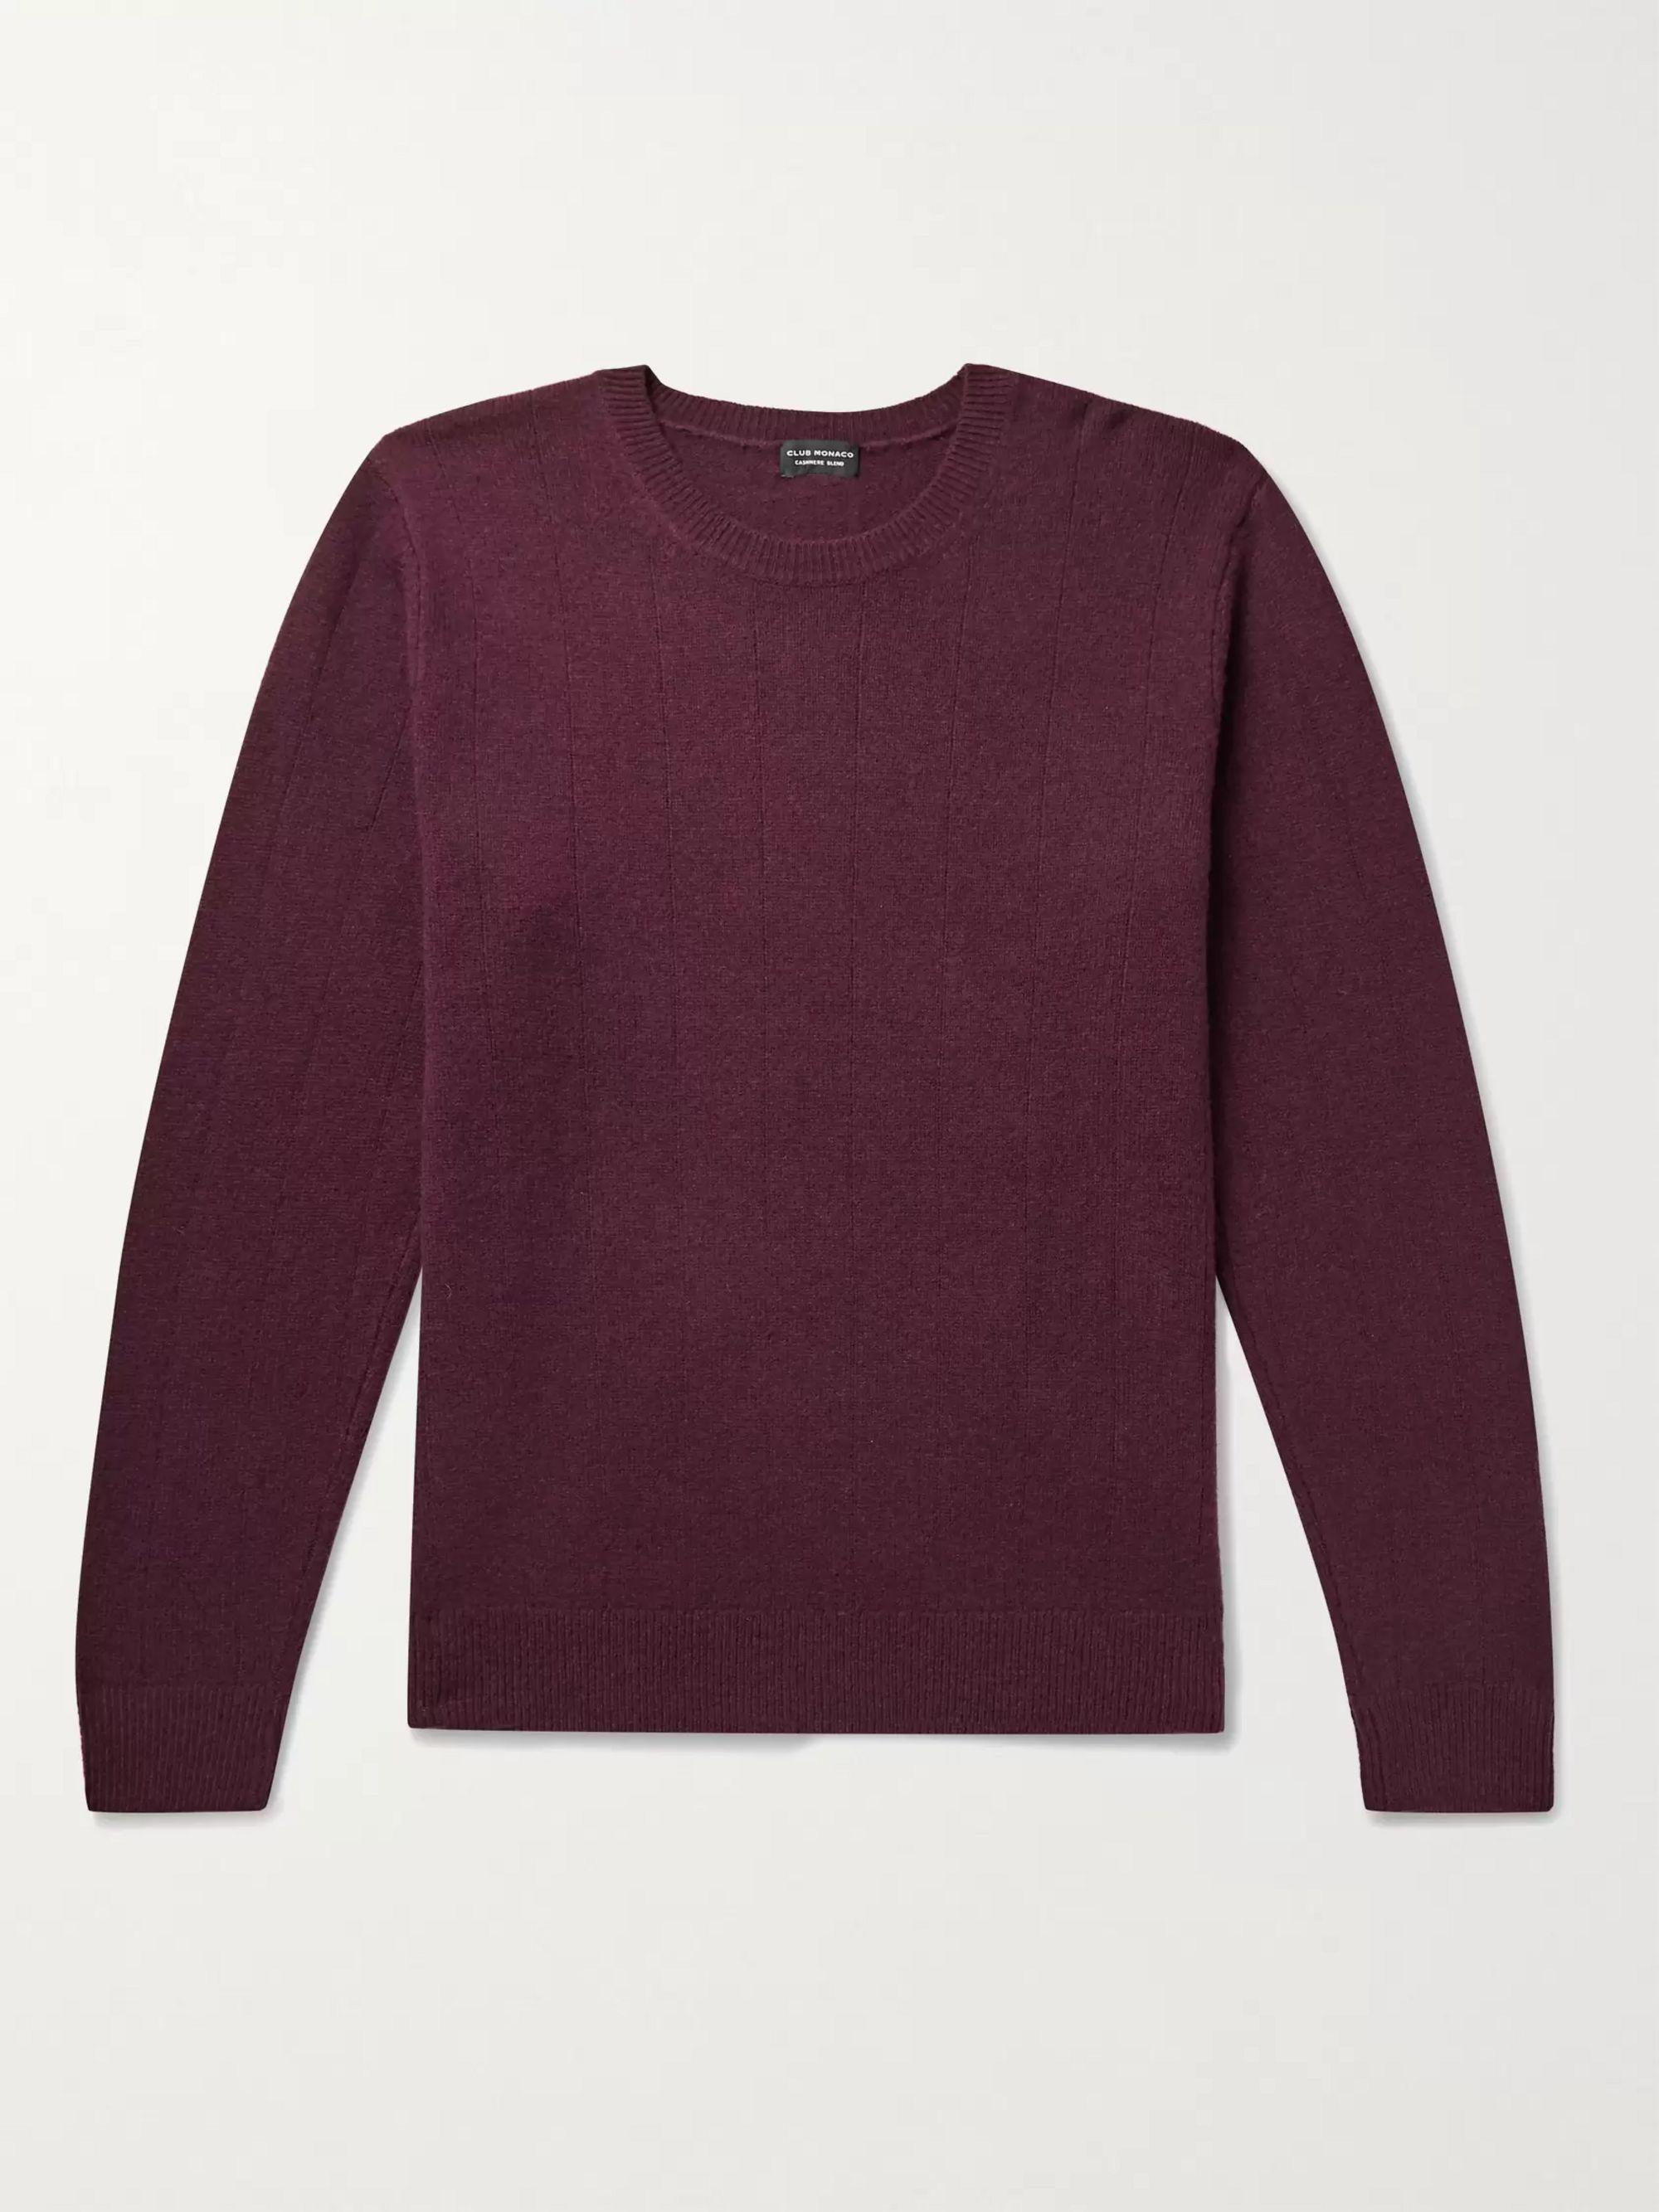 CLUB MONACO Ribbed Melange Wool and Cashmere-Blend Sweater